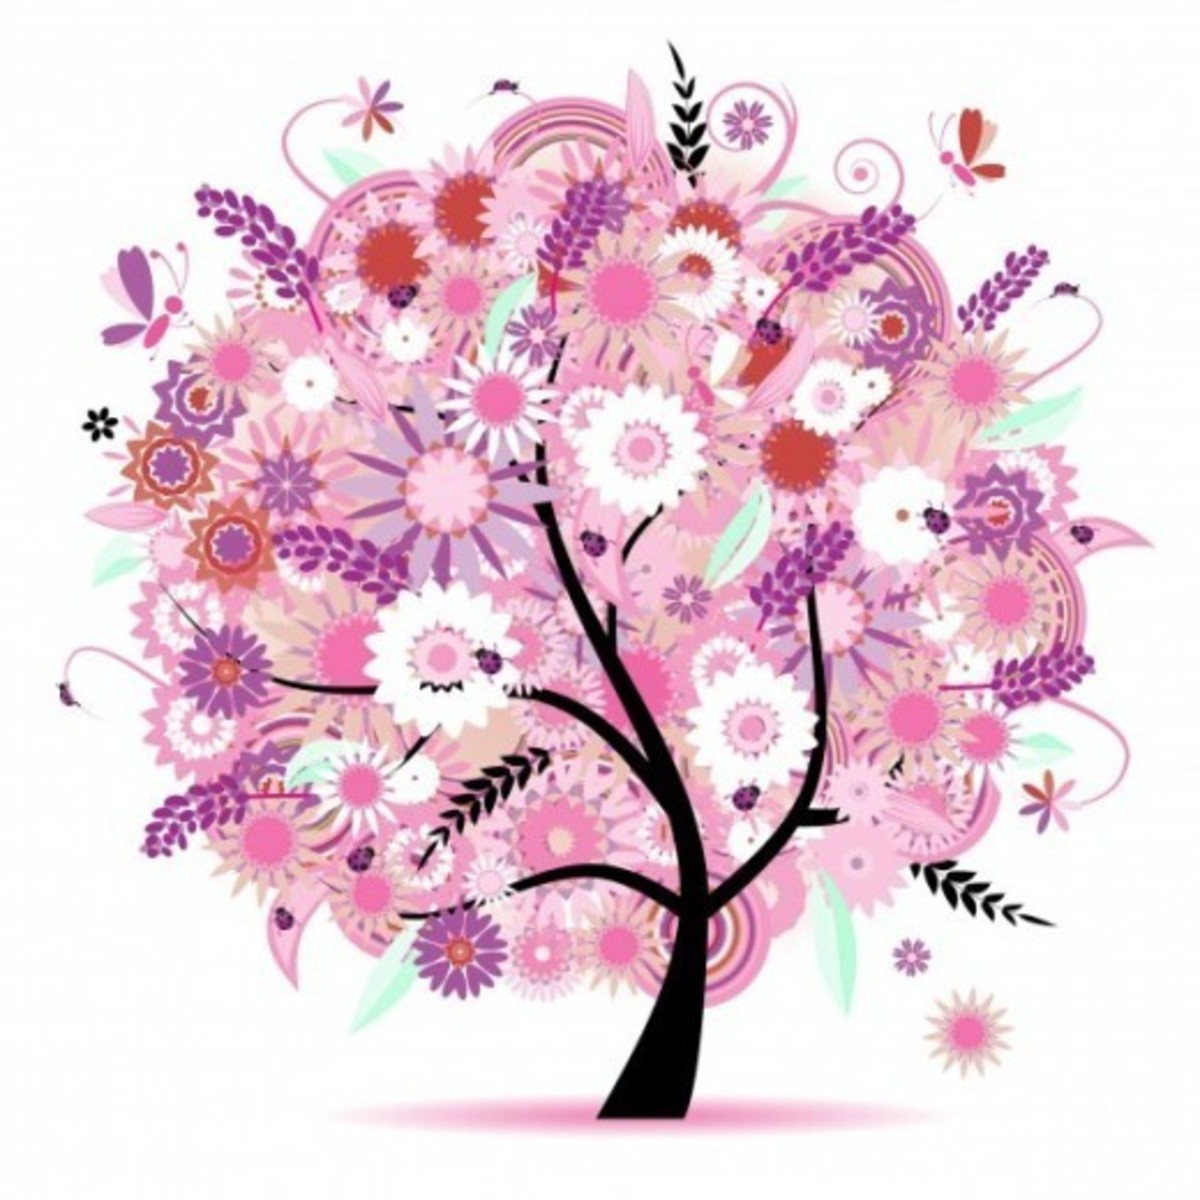 Pink Tree with Flowers and Butterflies